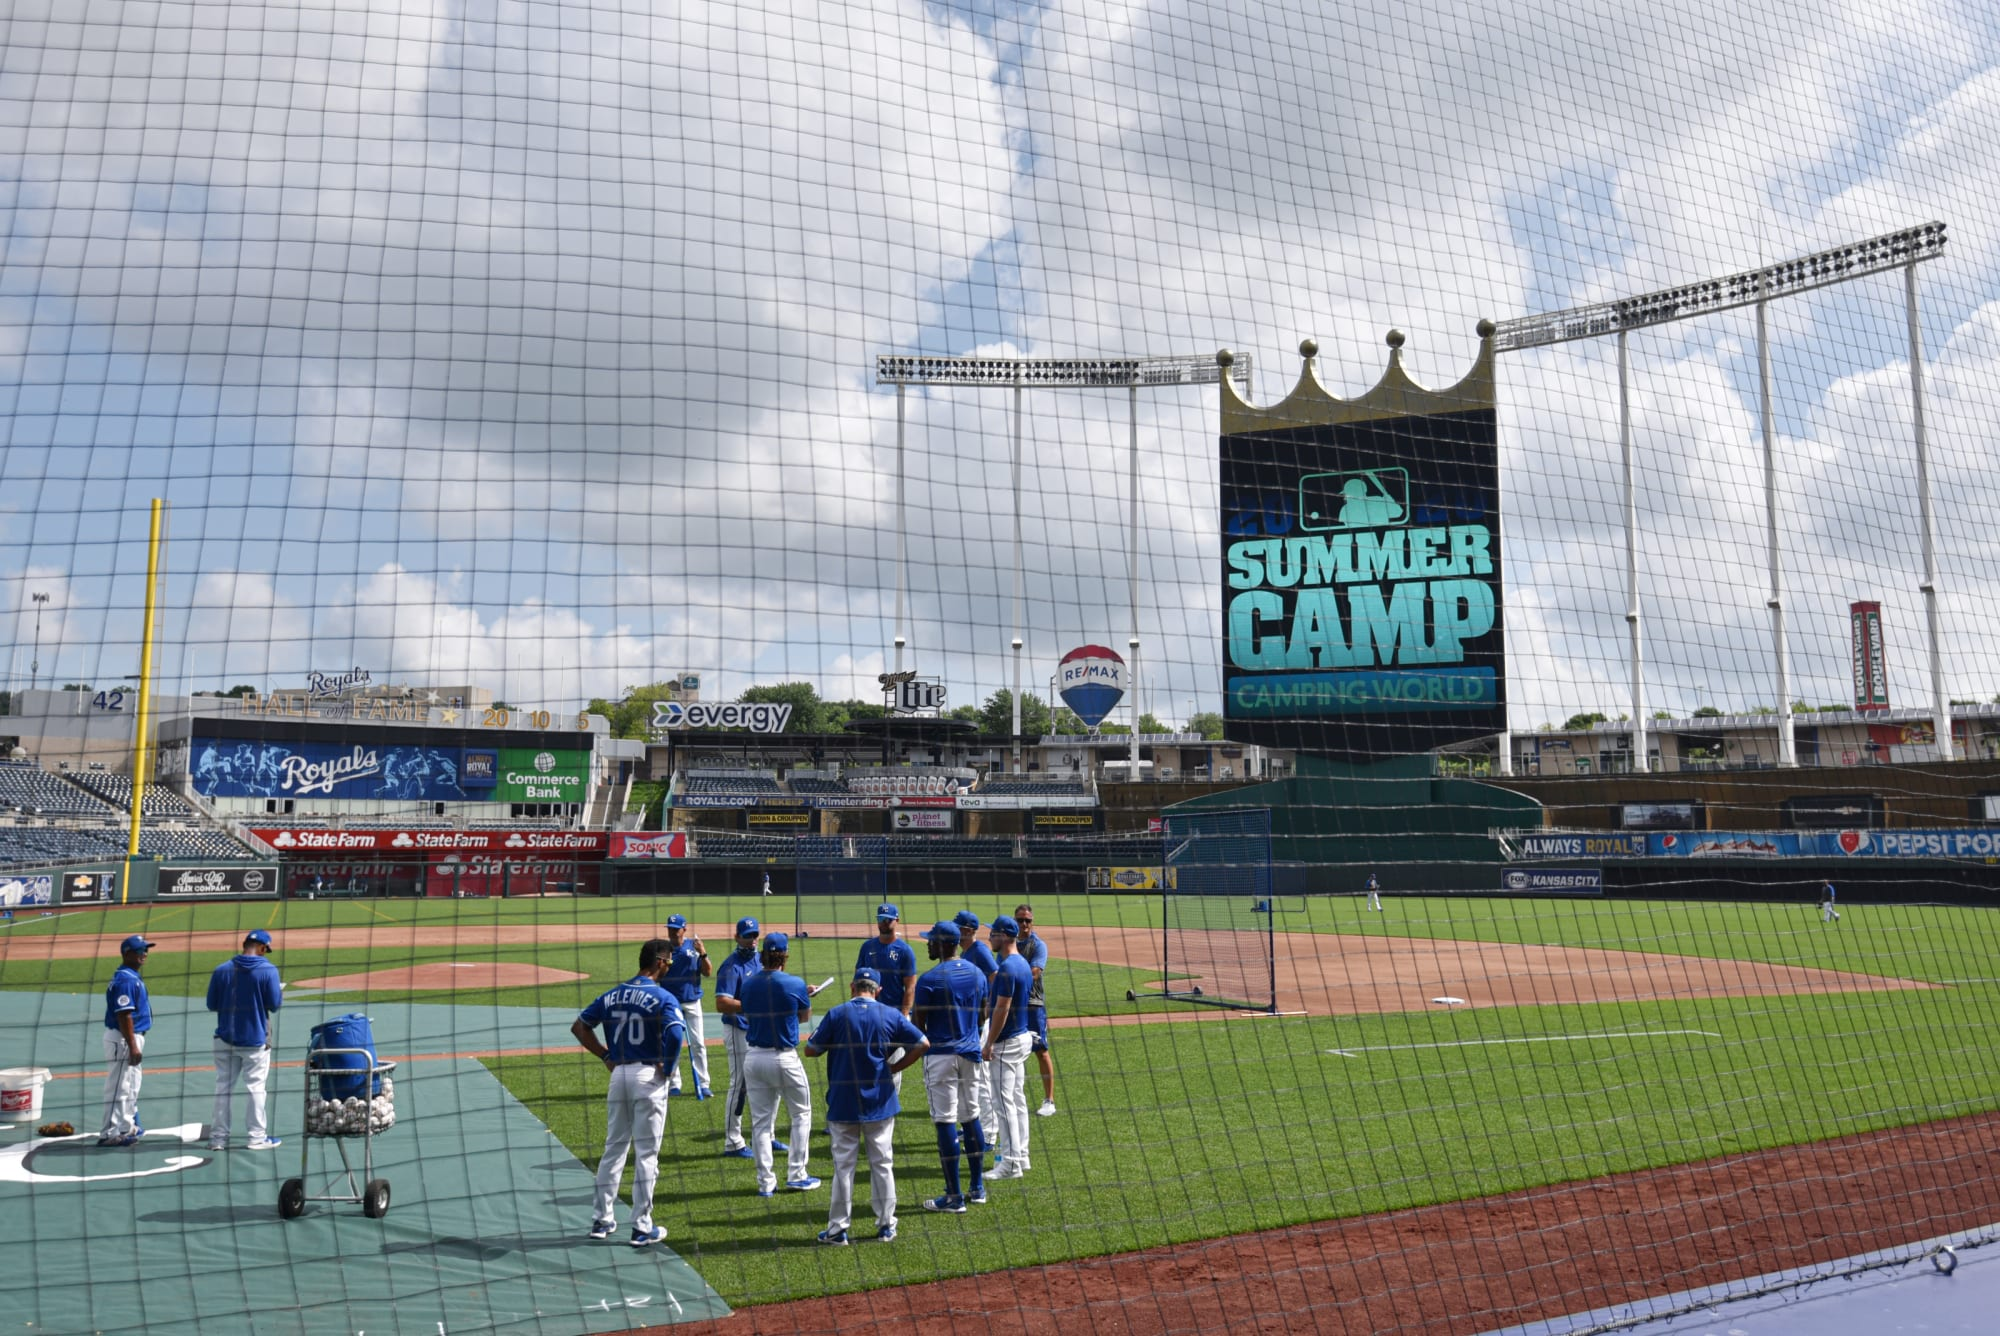 KC Royals: Manager faces difficulties before season starts